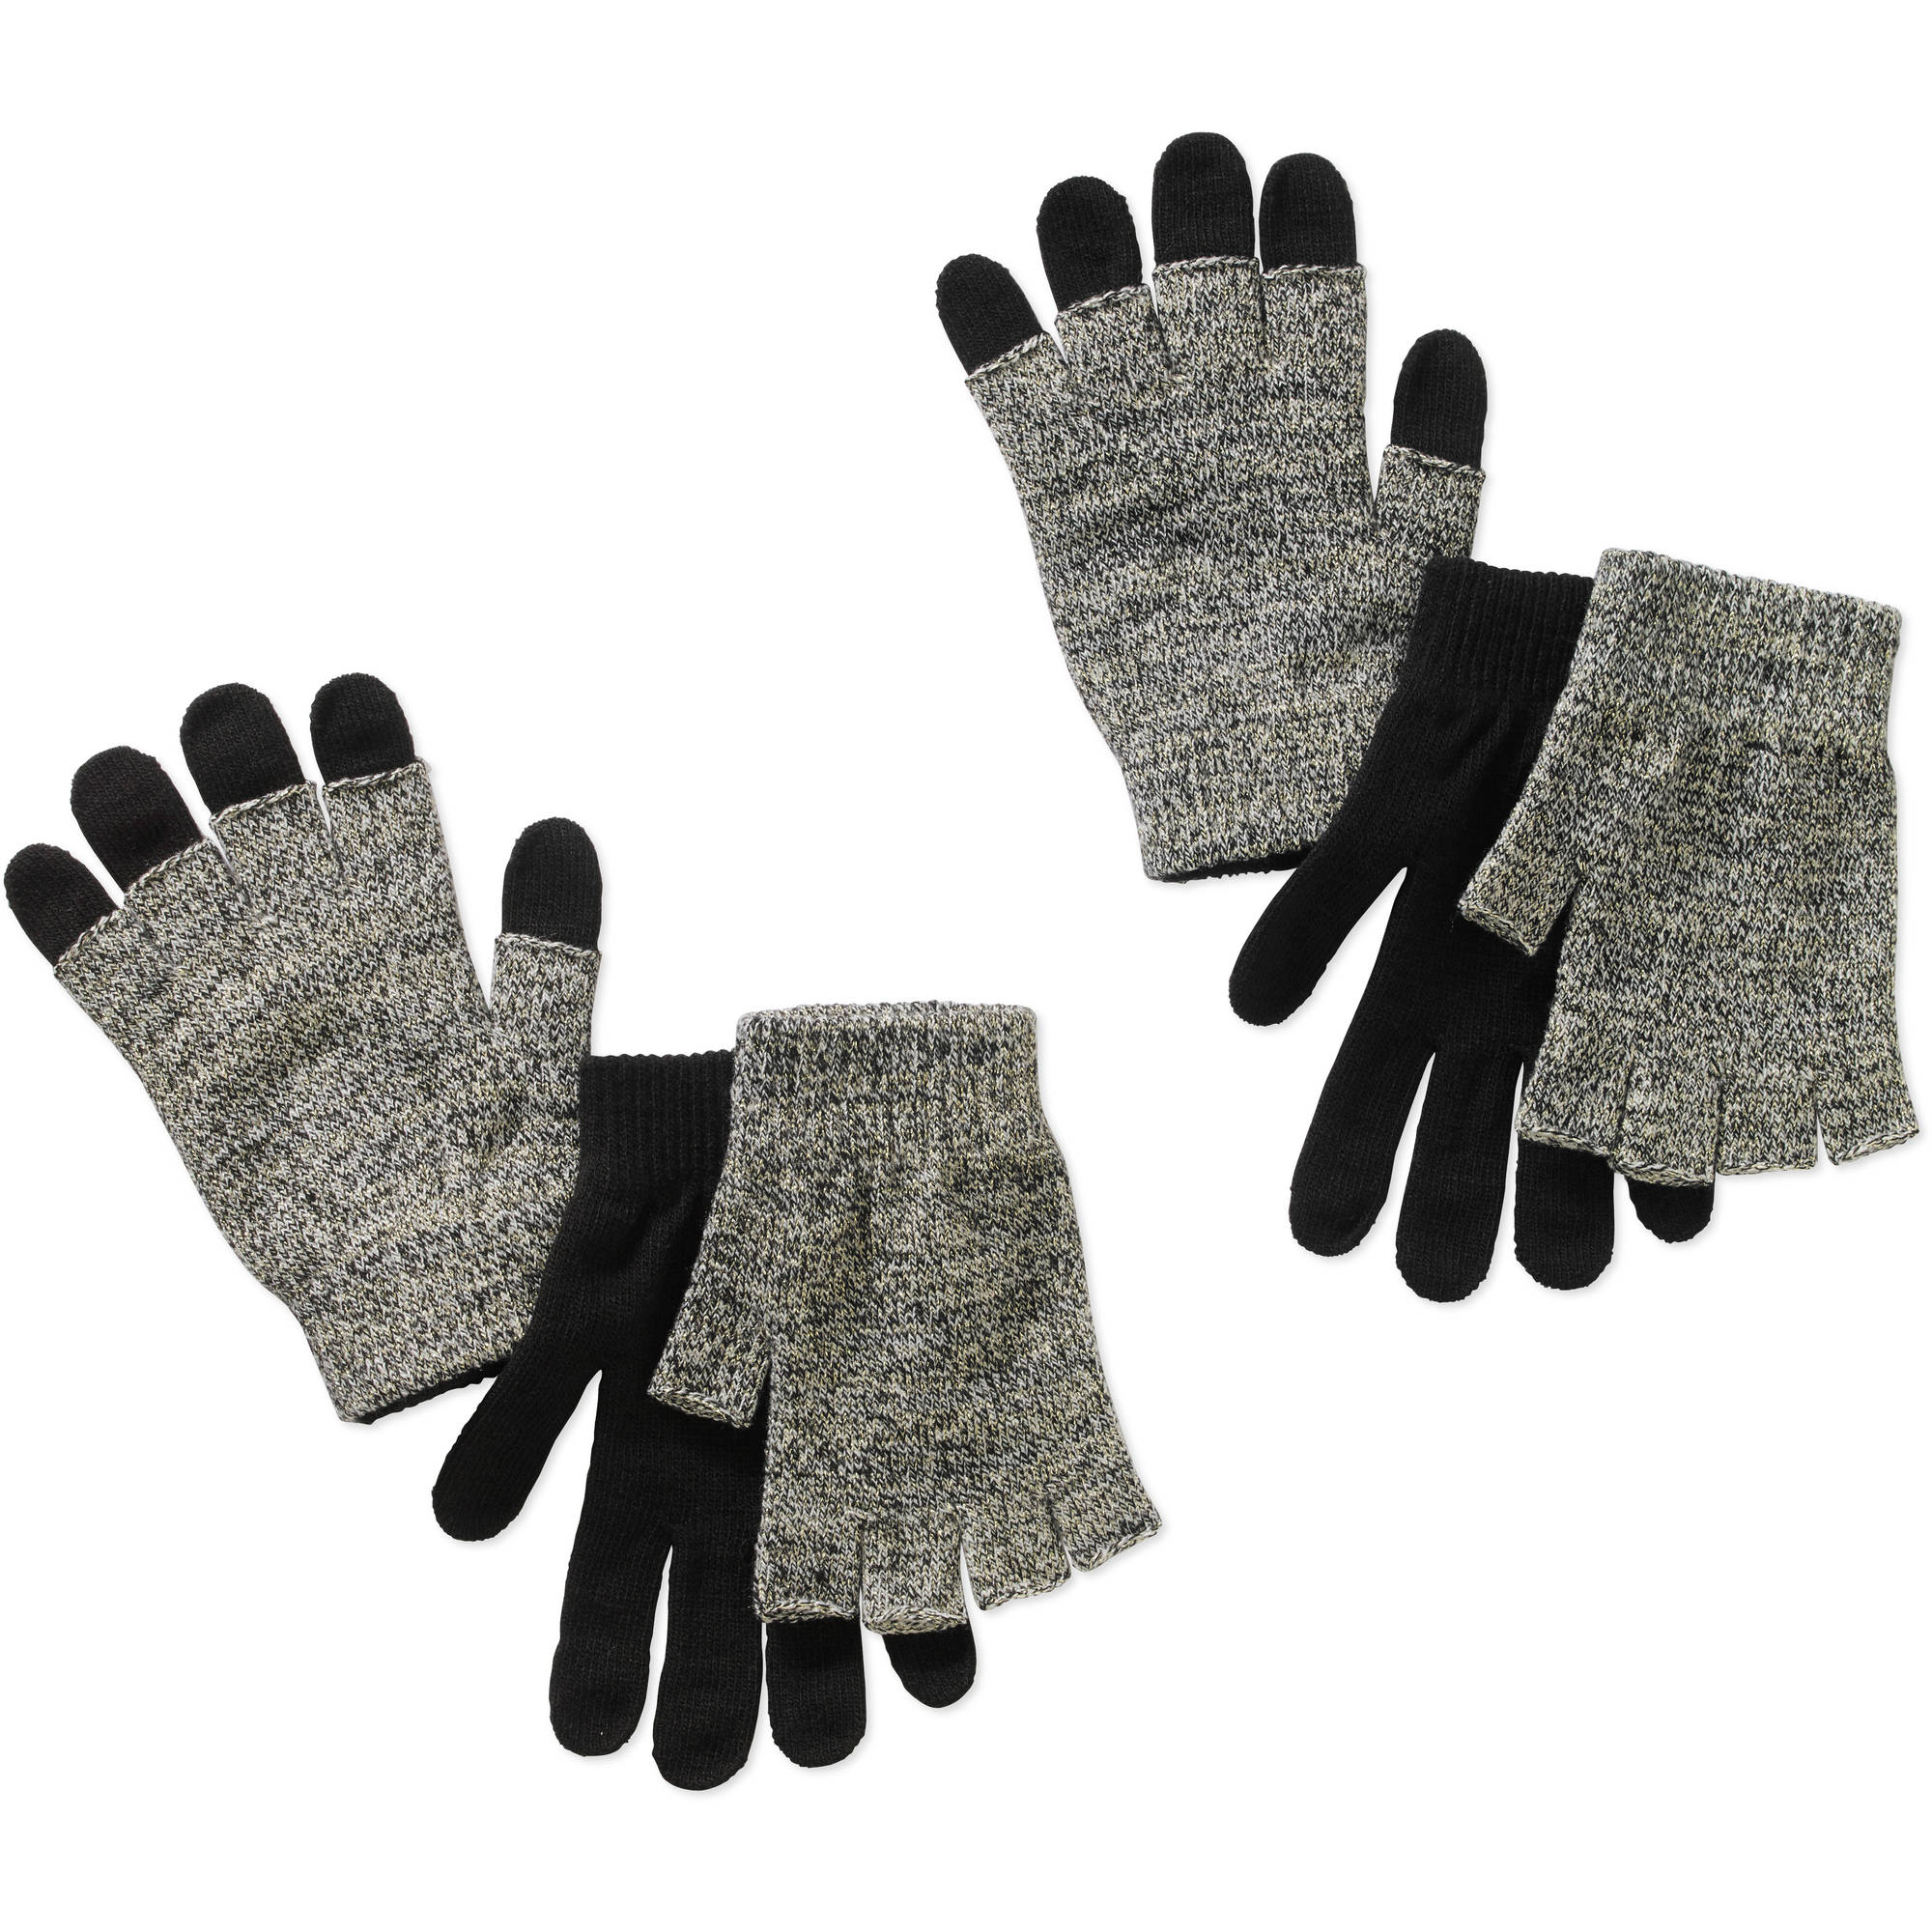 Women's 3 in 1 Lurex gloves 2 pairs, 4 Piece Set